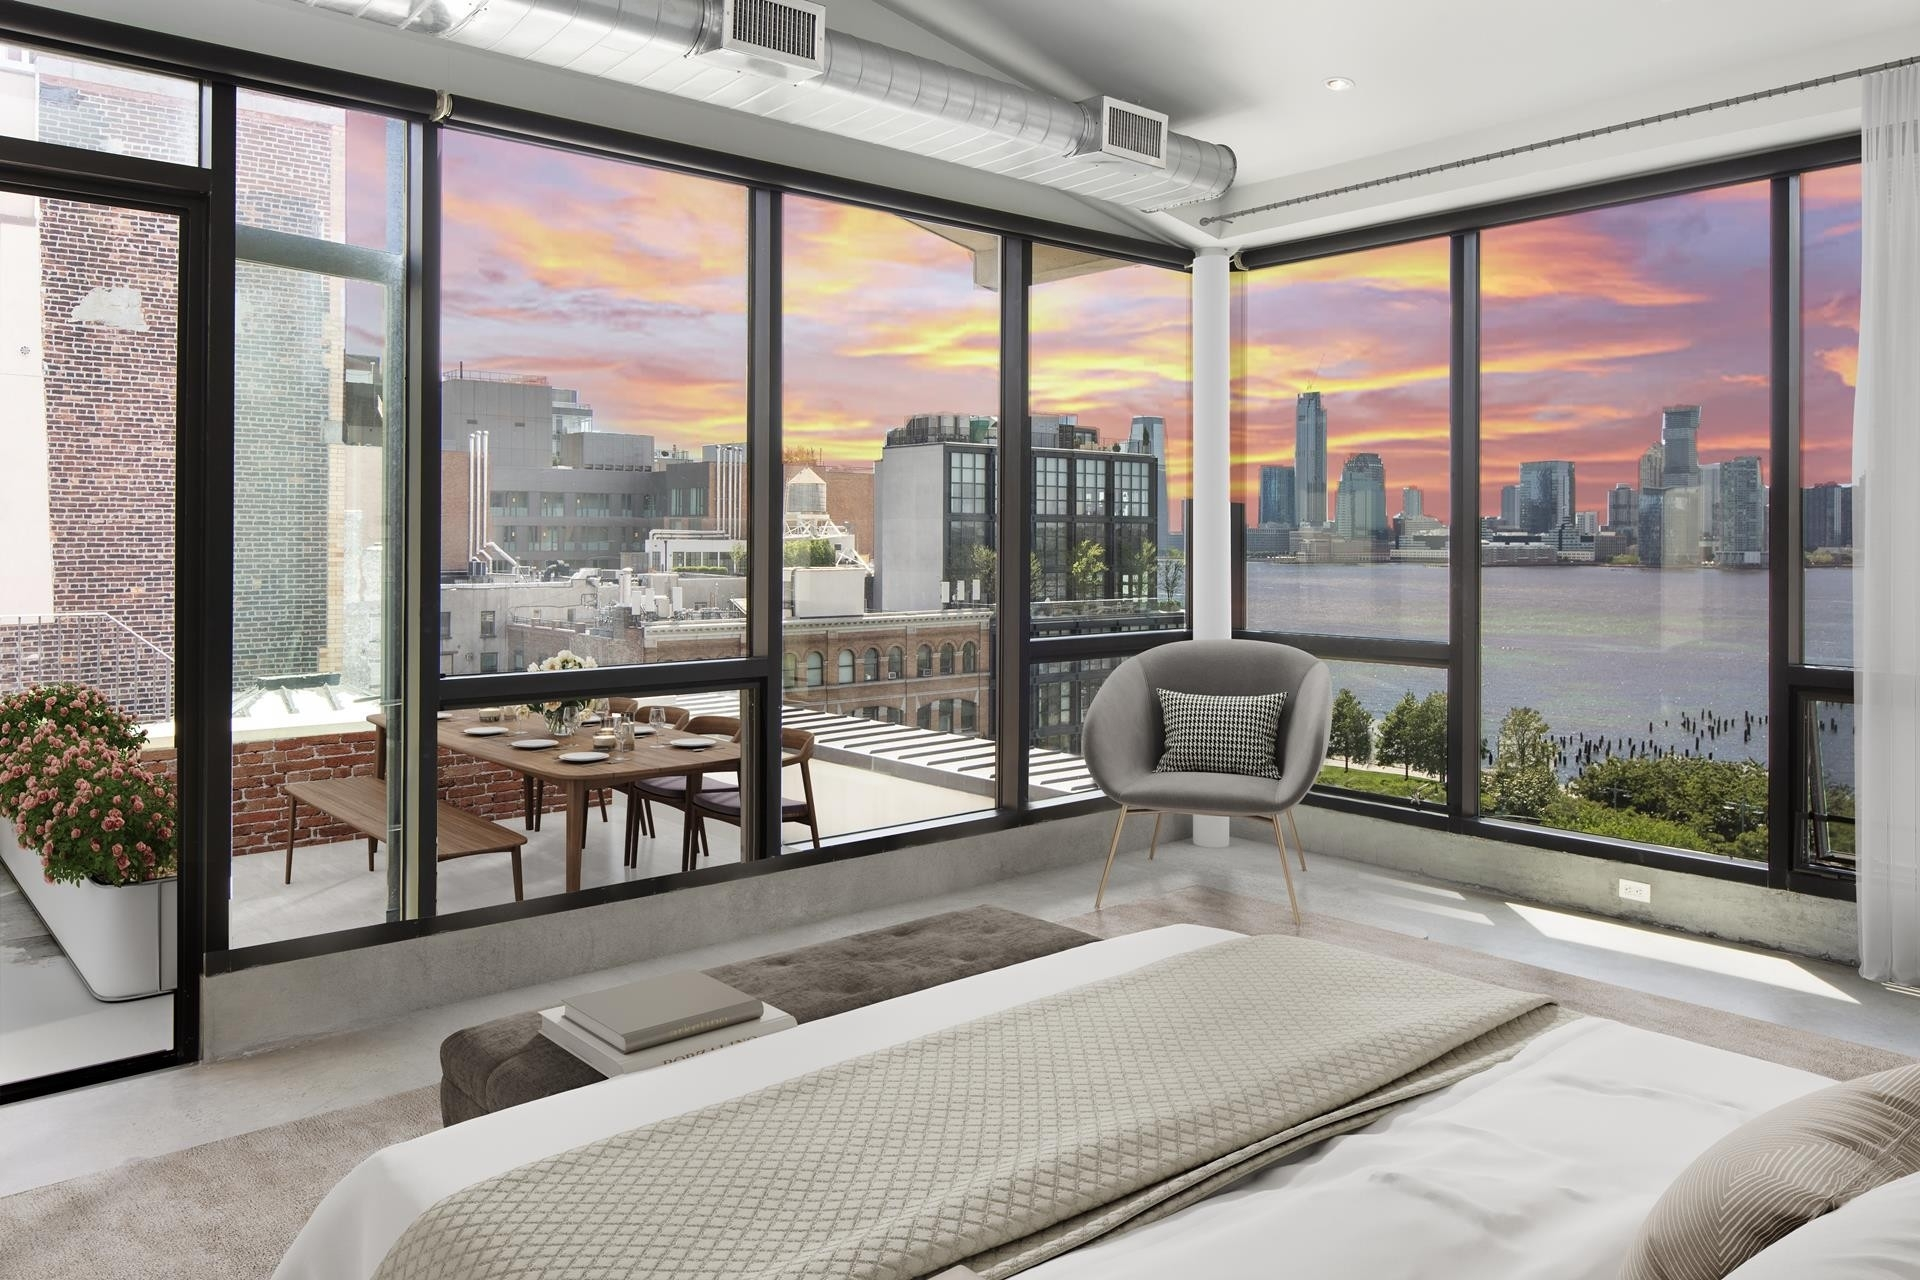 4. Condominiums for Sale at Spice Warehouse, 481 WASHINGTON ST , PHBC Hudson Square, New York, NY 10013